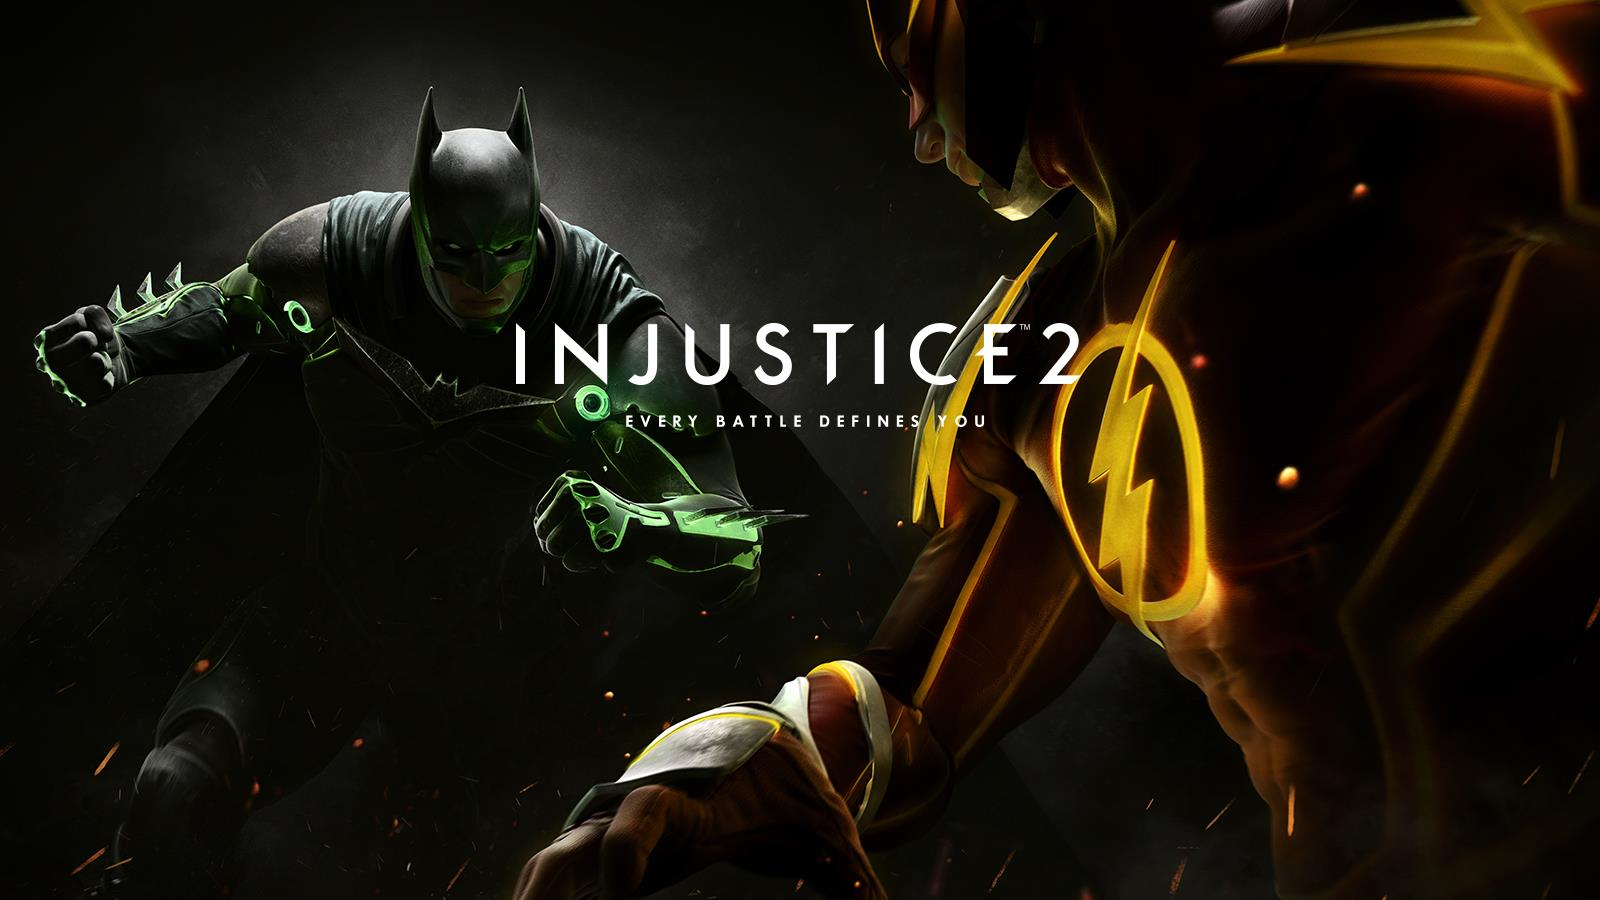 Injustice 2 Teenage Mutant Ninja Turtles: How To Download